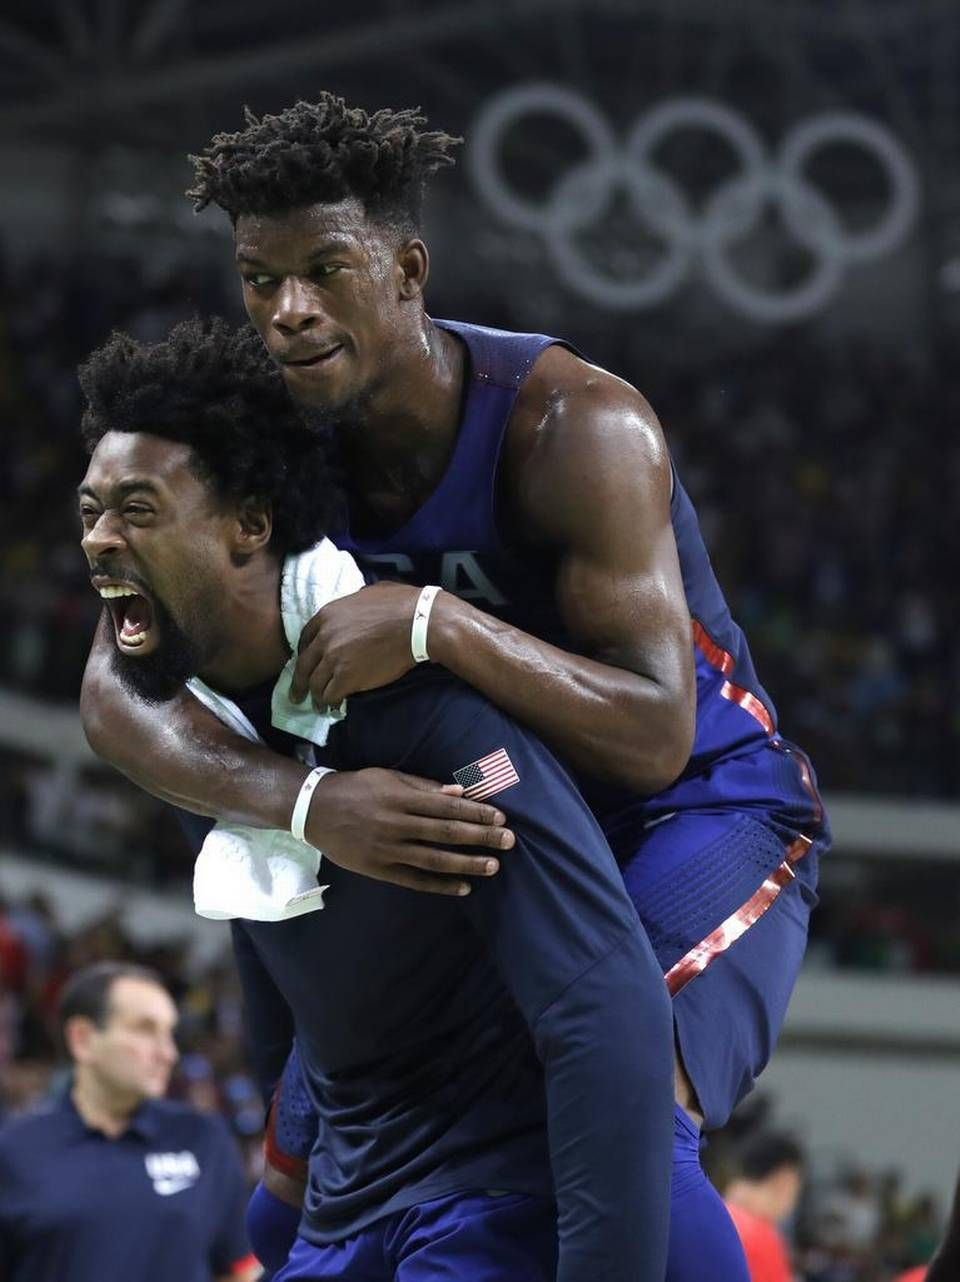 Photos From The Olympic Games In Rio Team Usa Basketball Olympic Games Olympics